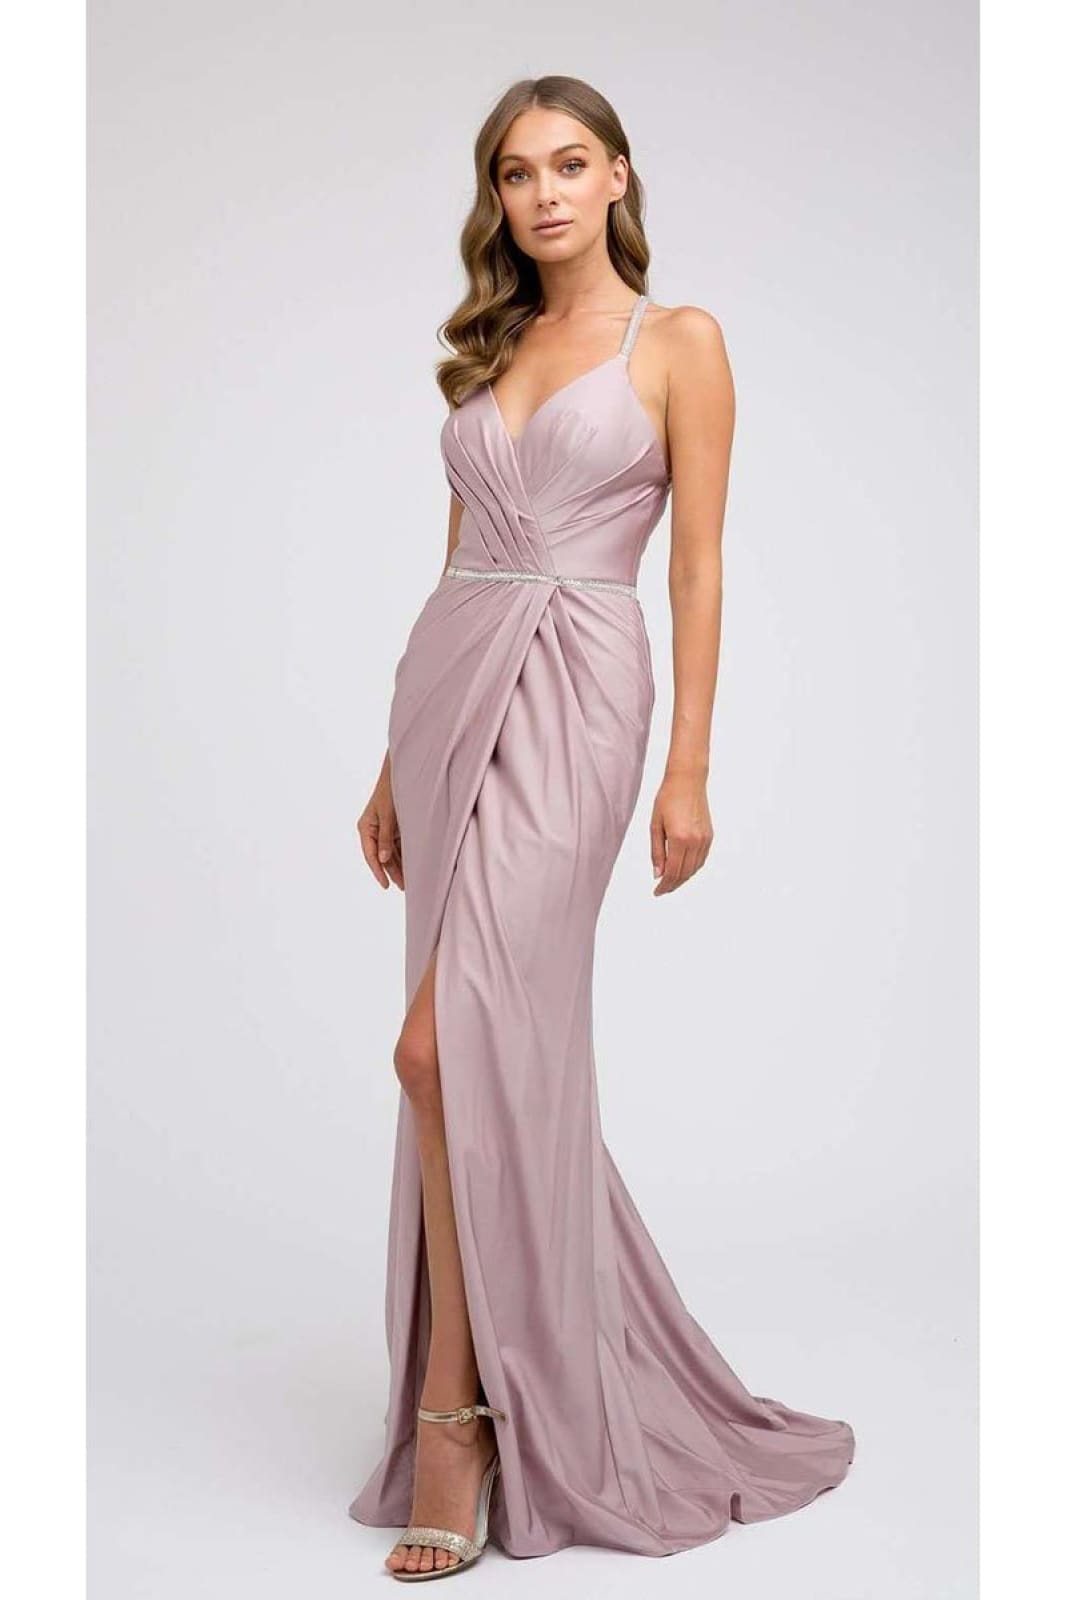 Simple & Sexy Prom Dress JT233 - Mauve / XS - Dress